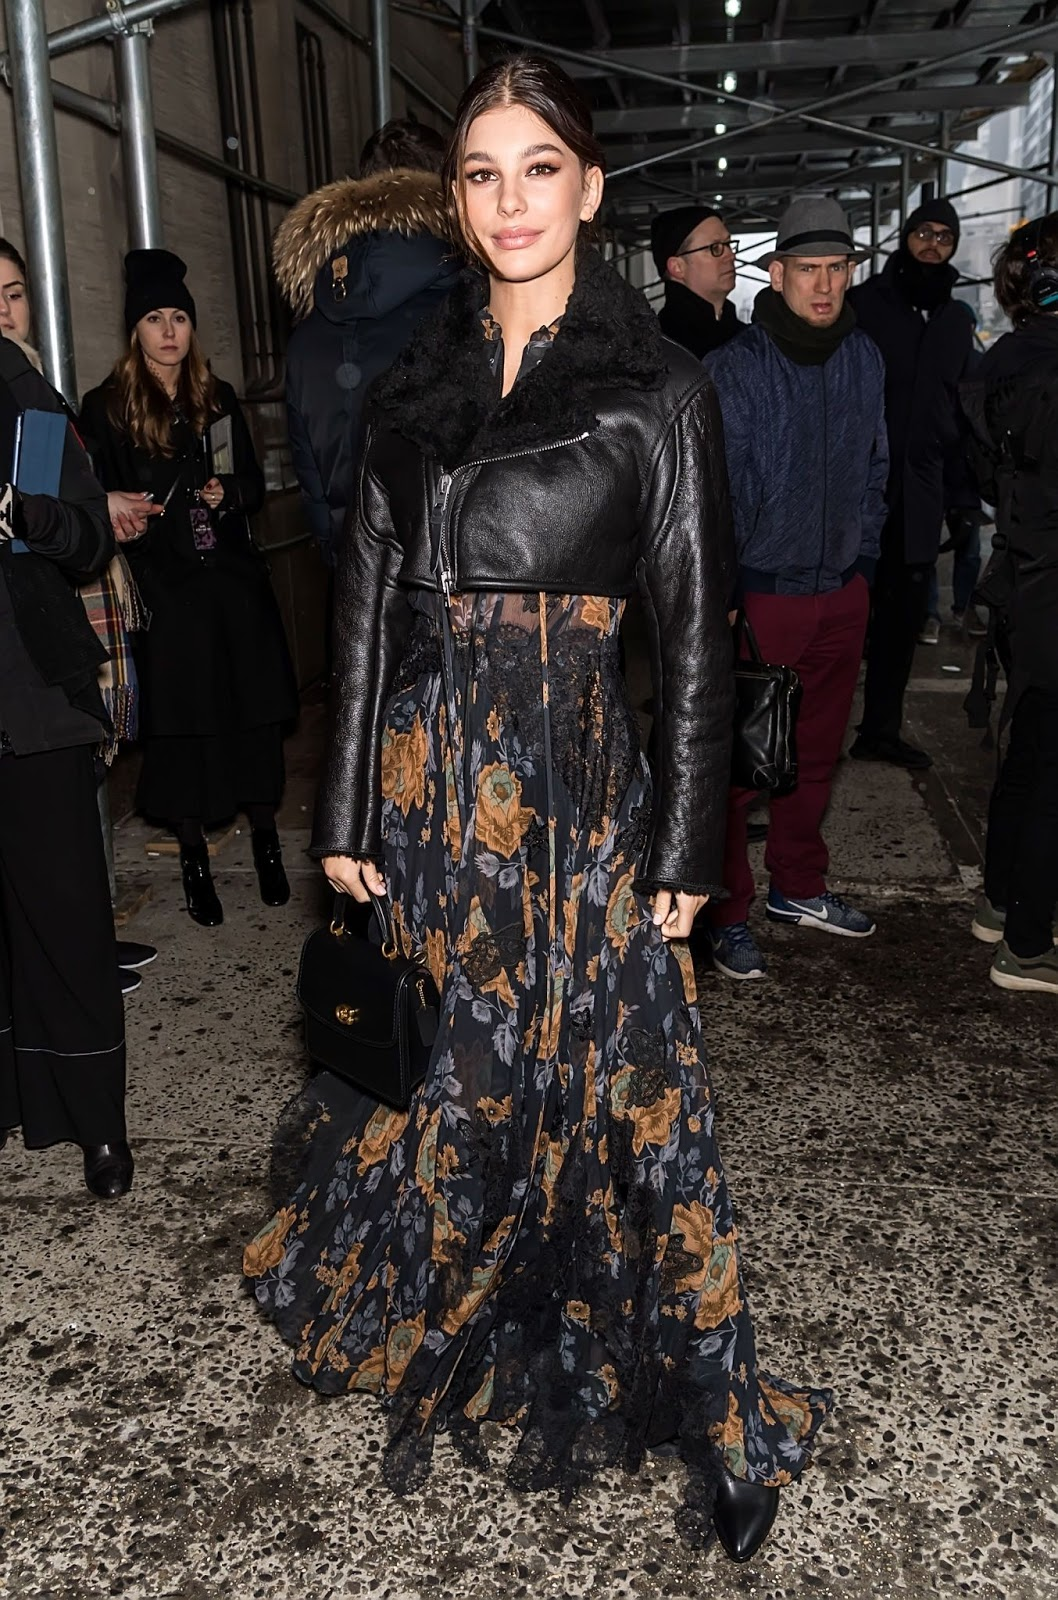 Camila Morrone - Outside Coach fashion show during NYFW in NYC - 02/12/2019